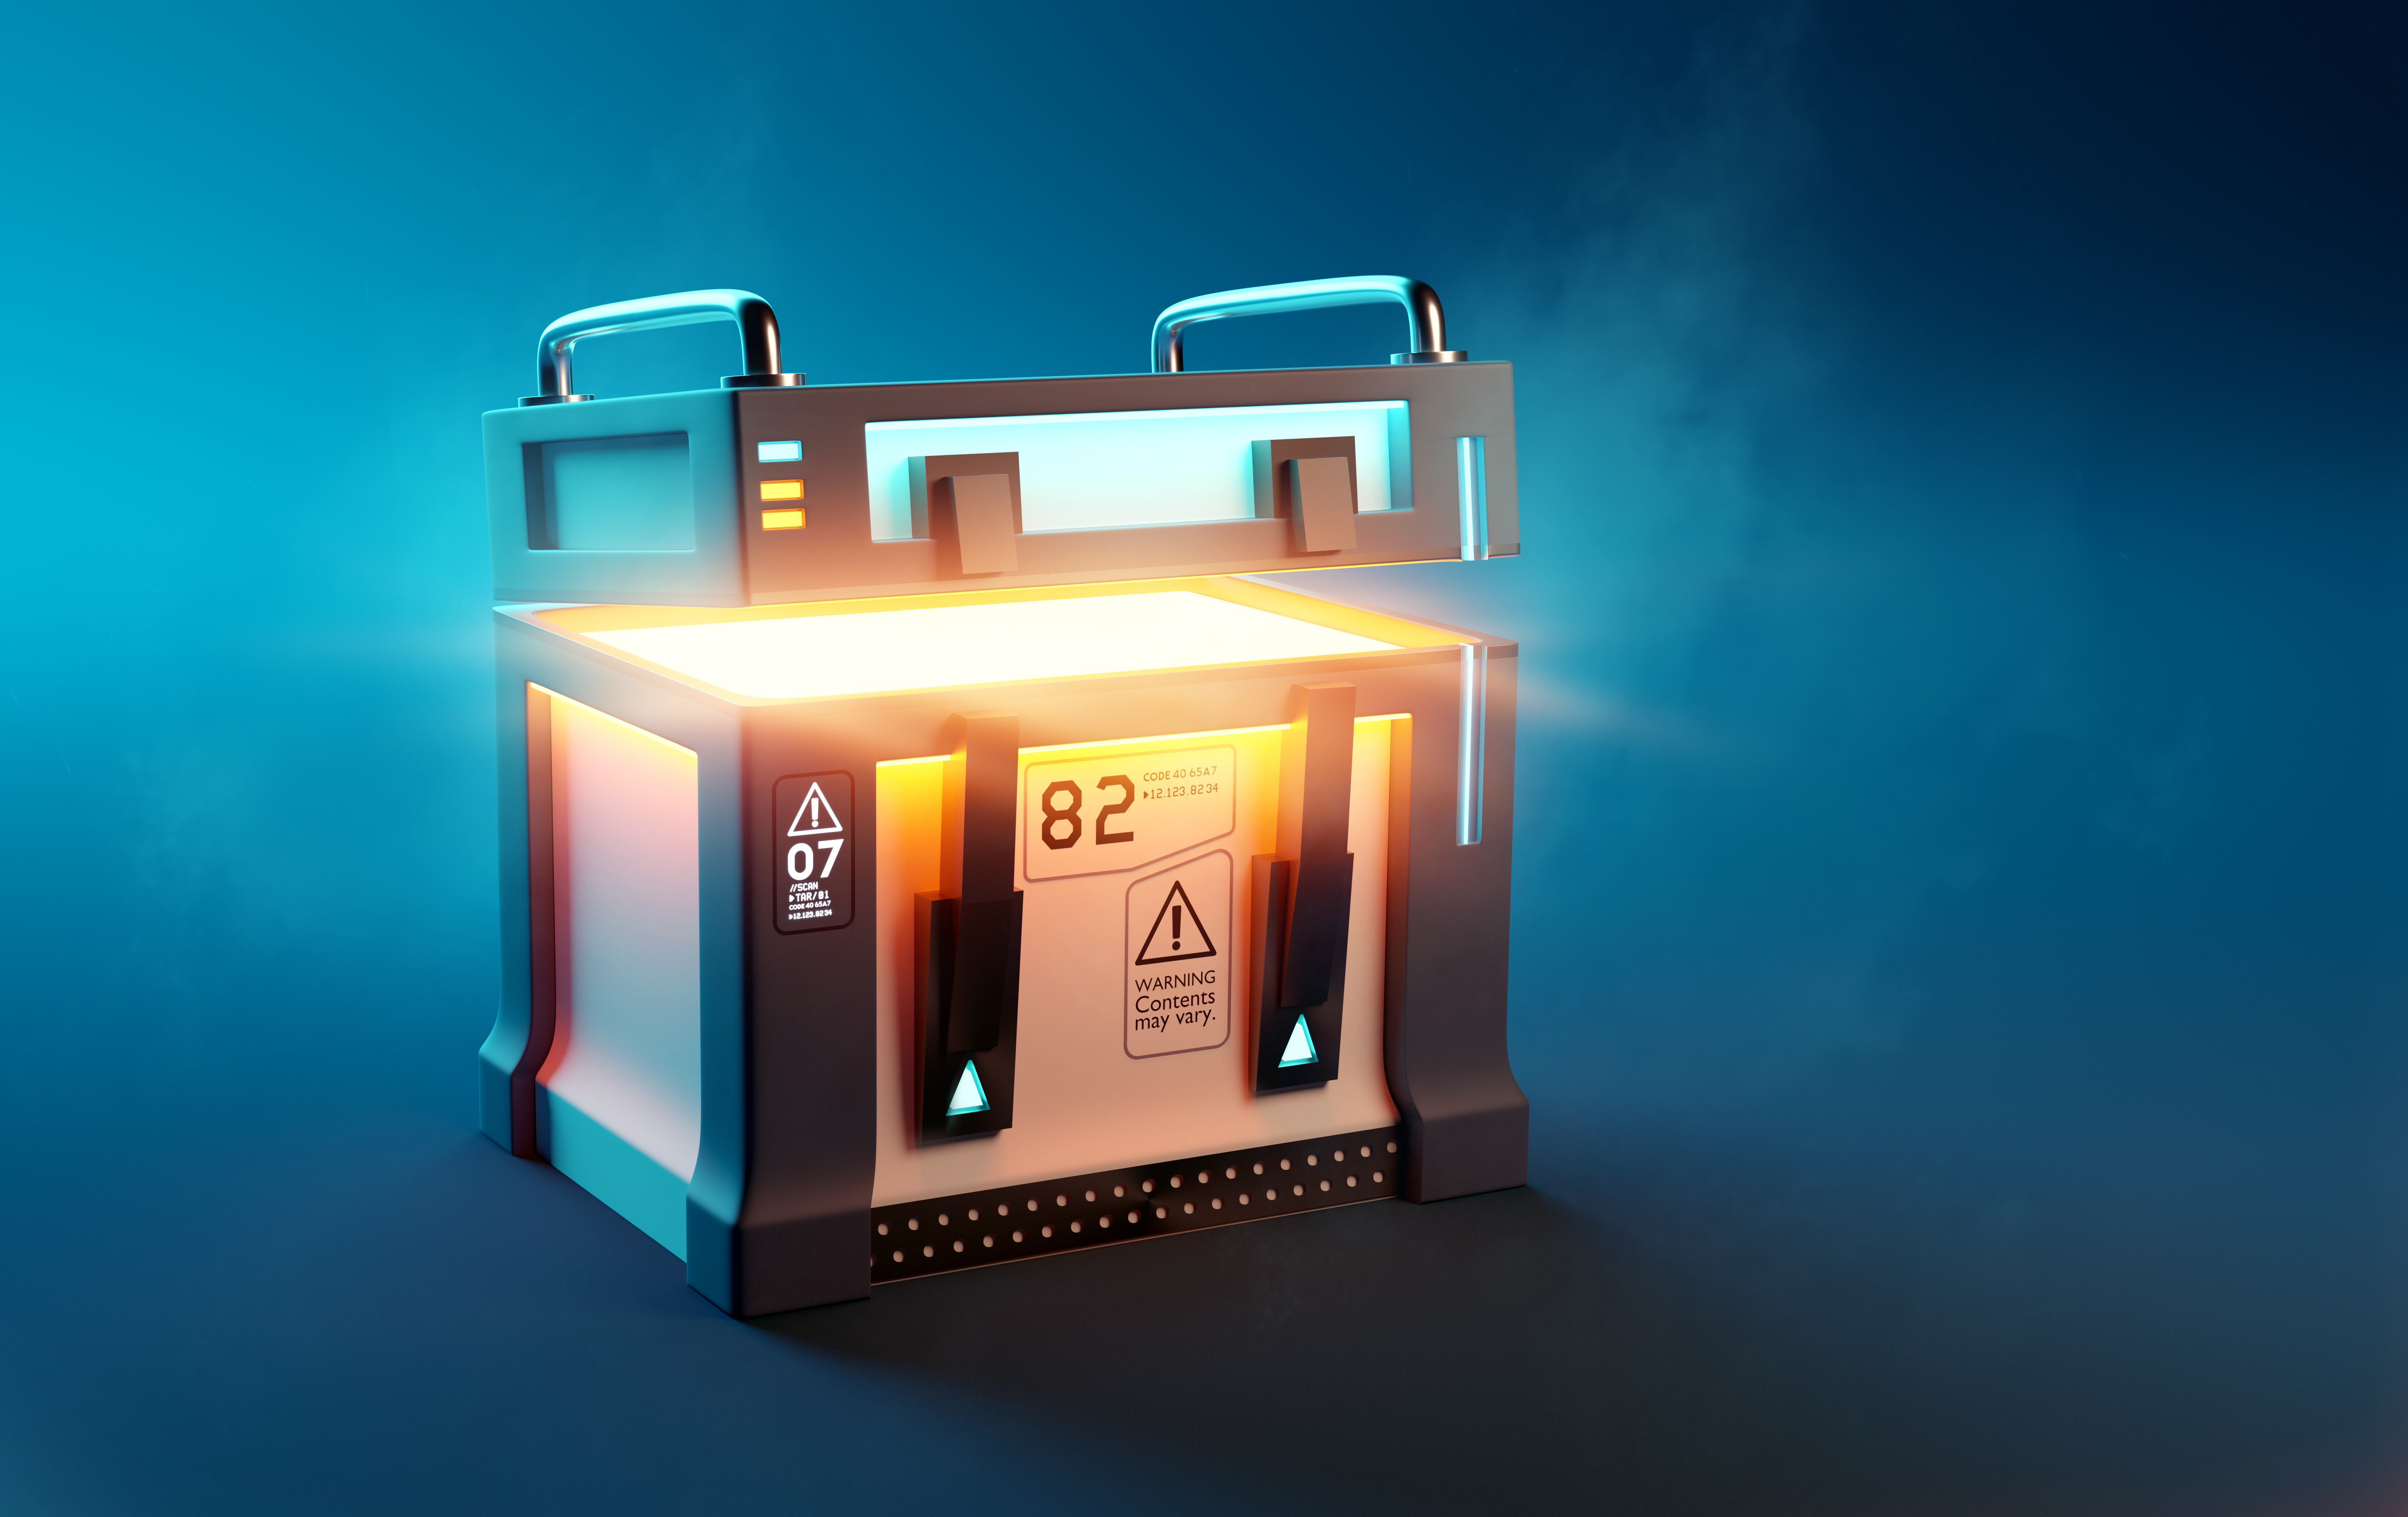 Germany may restrict games with loot boxes to adults